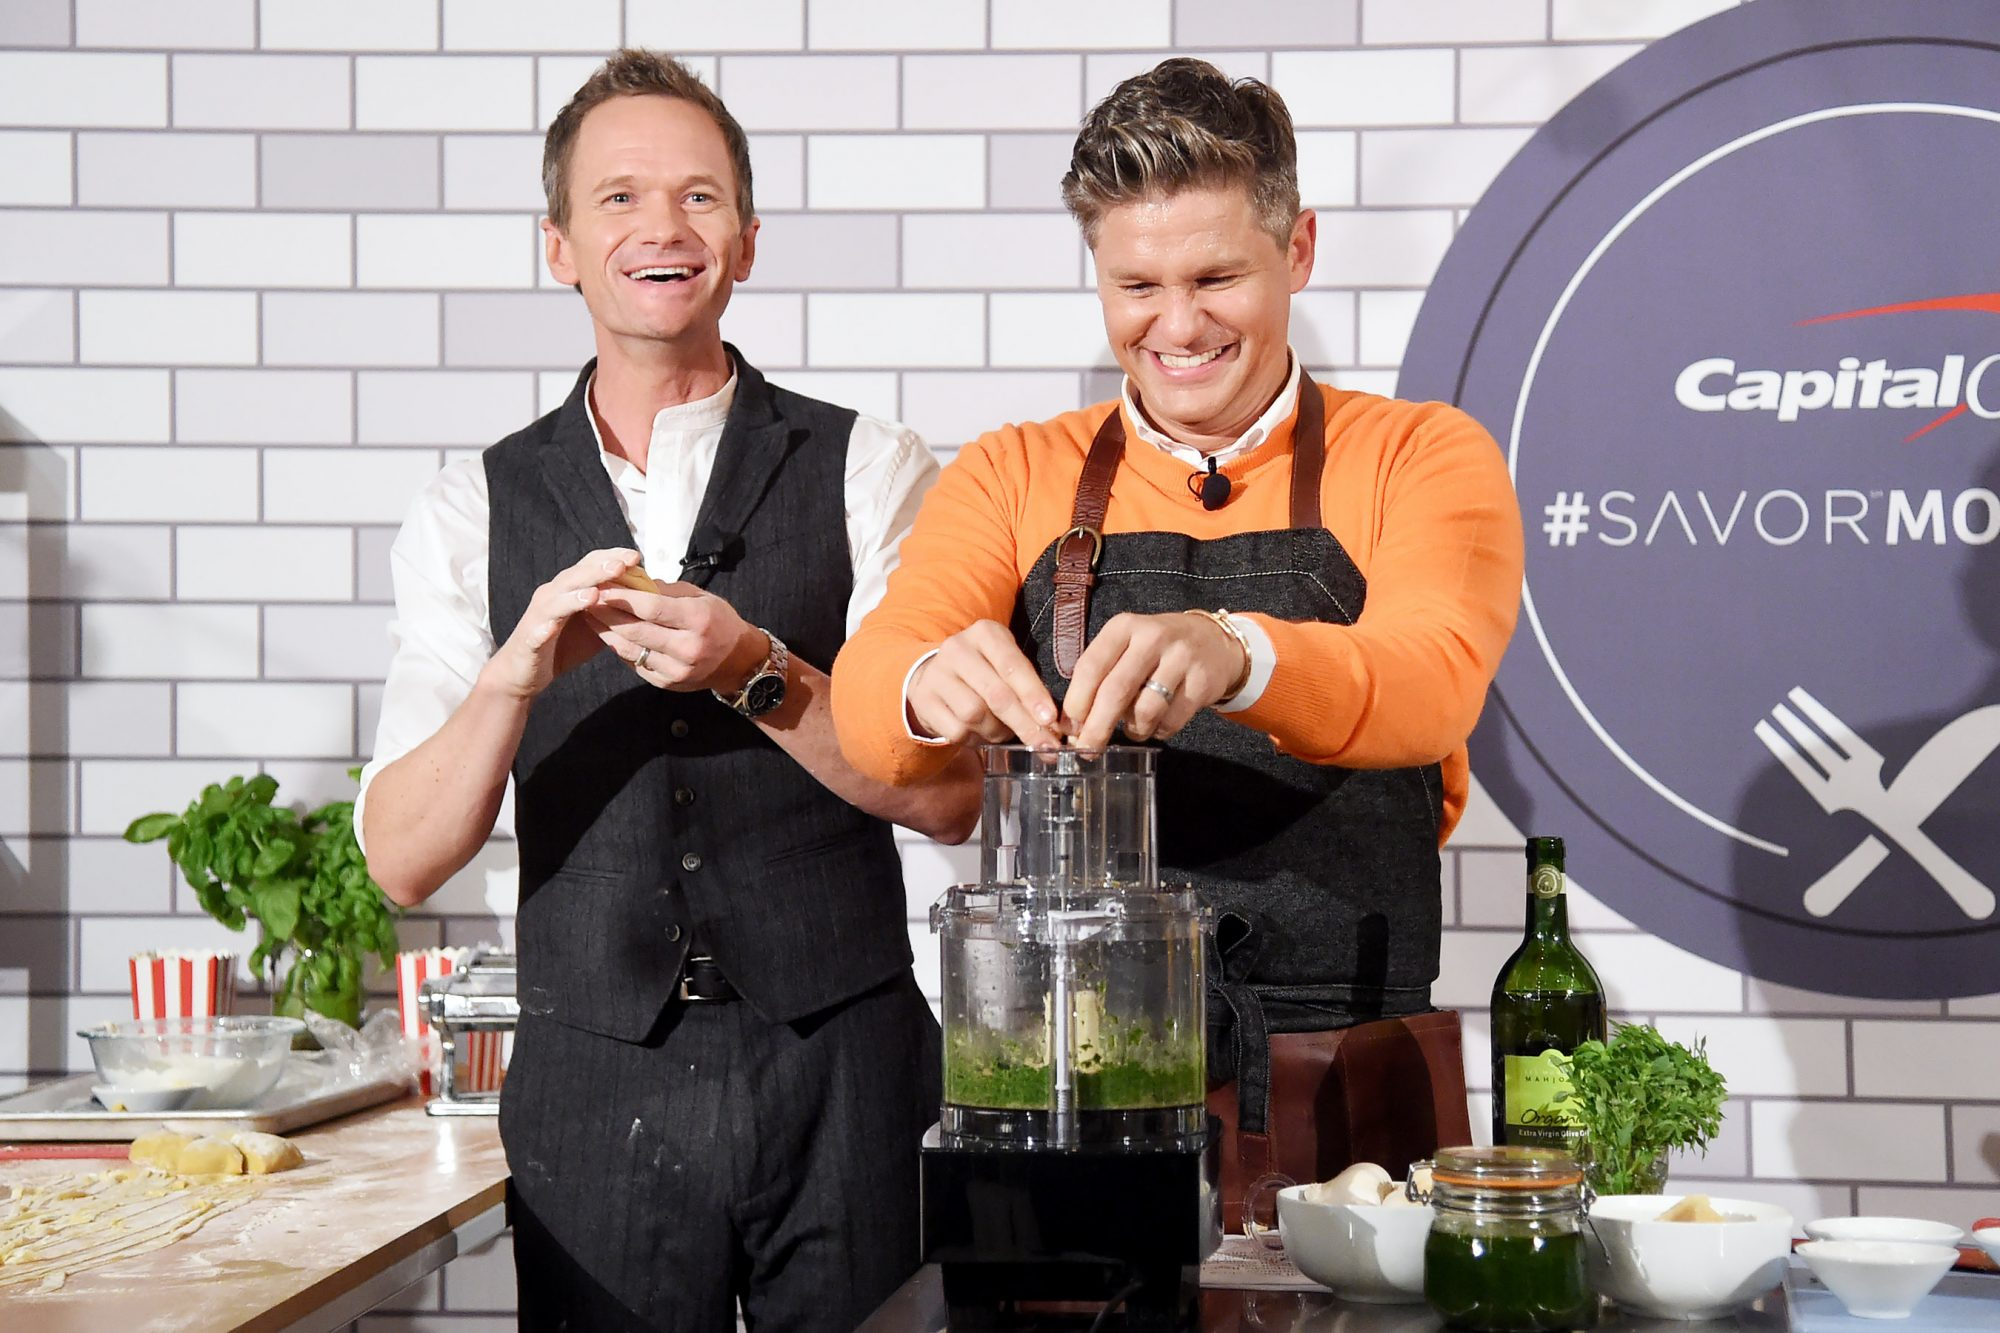 Capital One Celebrates The Launch Of The New Savor Credit Card With Neil Patrick Harris And David Burtka